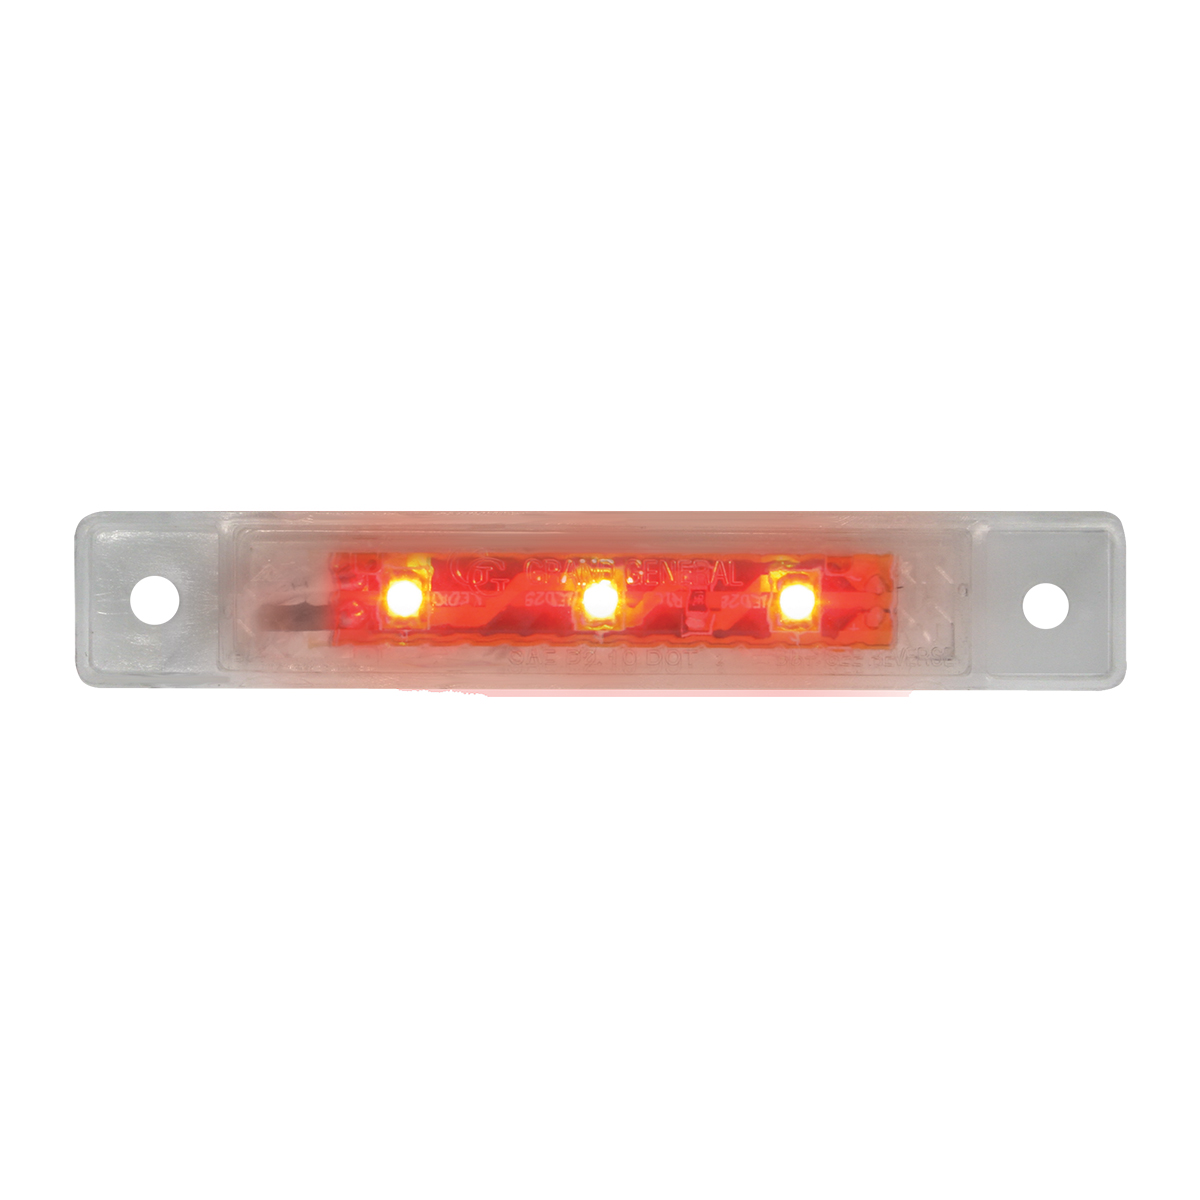 "76283 3.5"" Ultra Thin LED Marker Light"